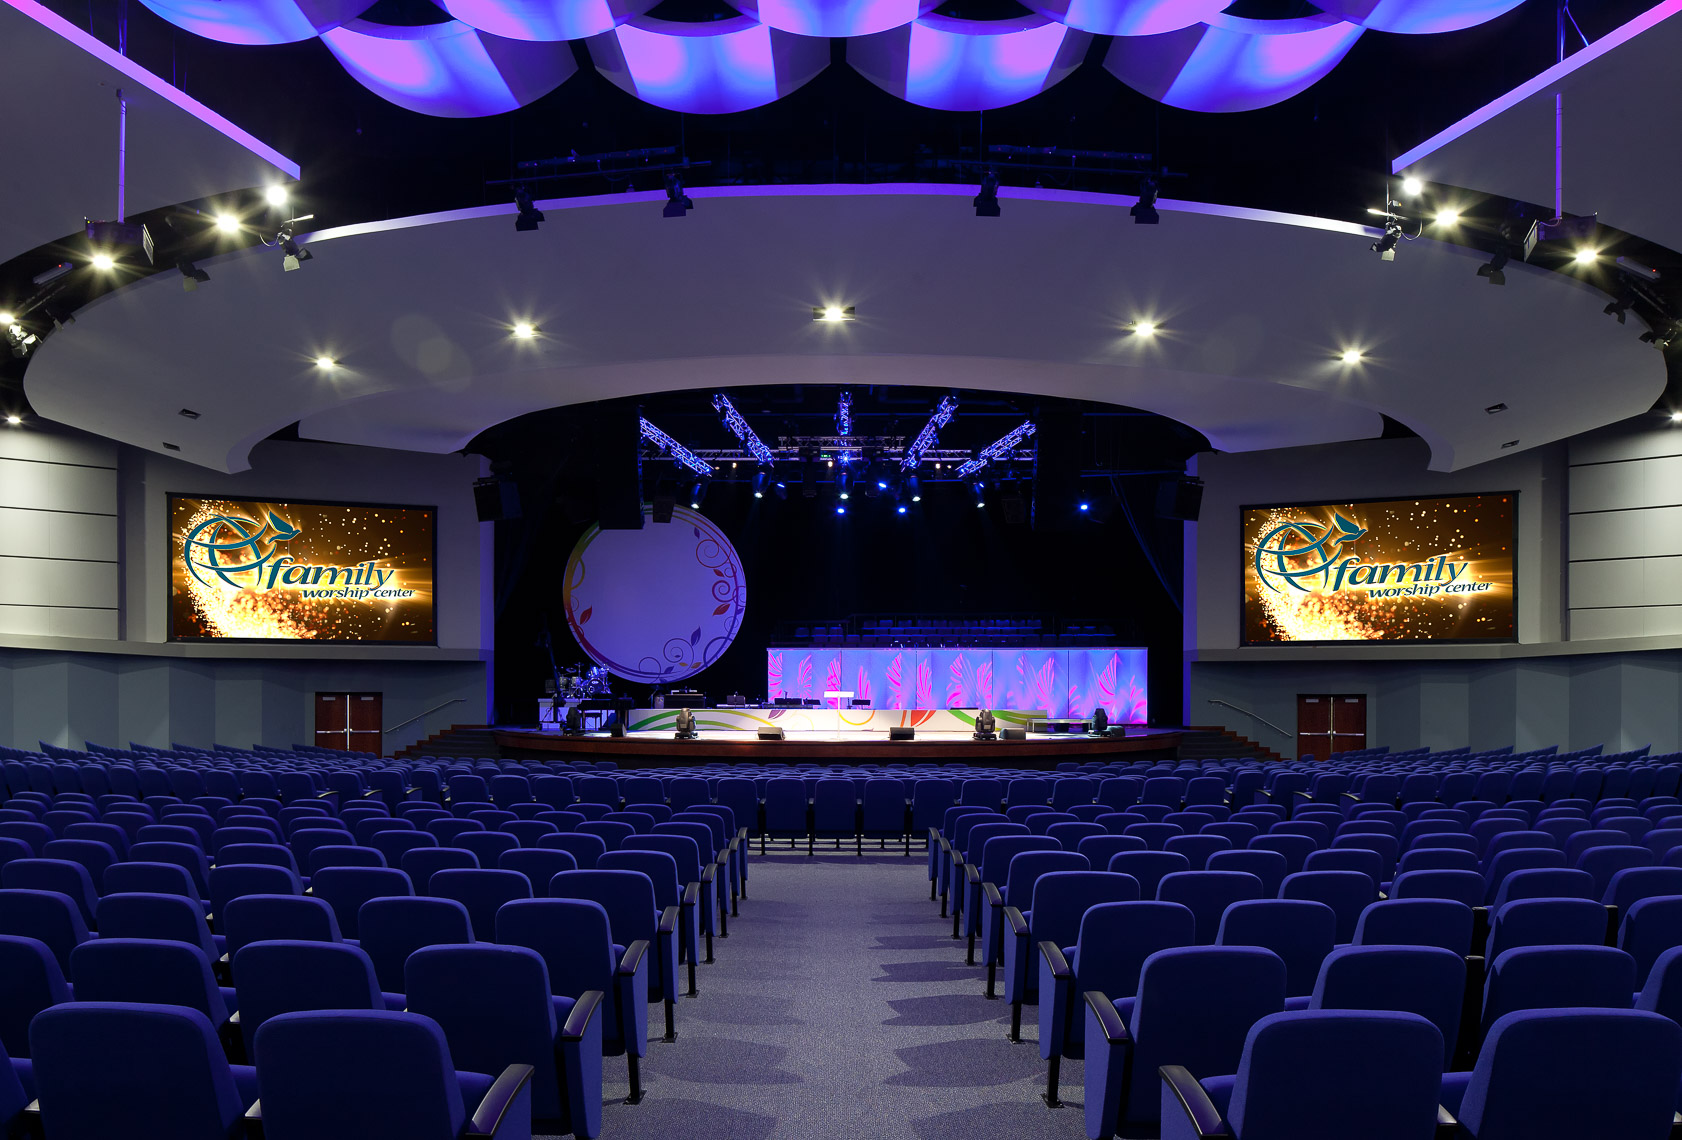 Family Worship Center - Mark Borosch Photography - Lakeland, FL